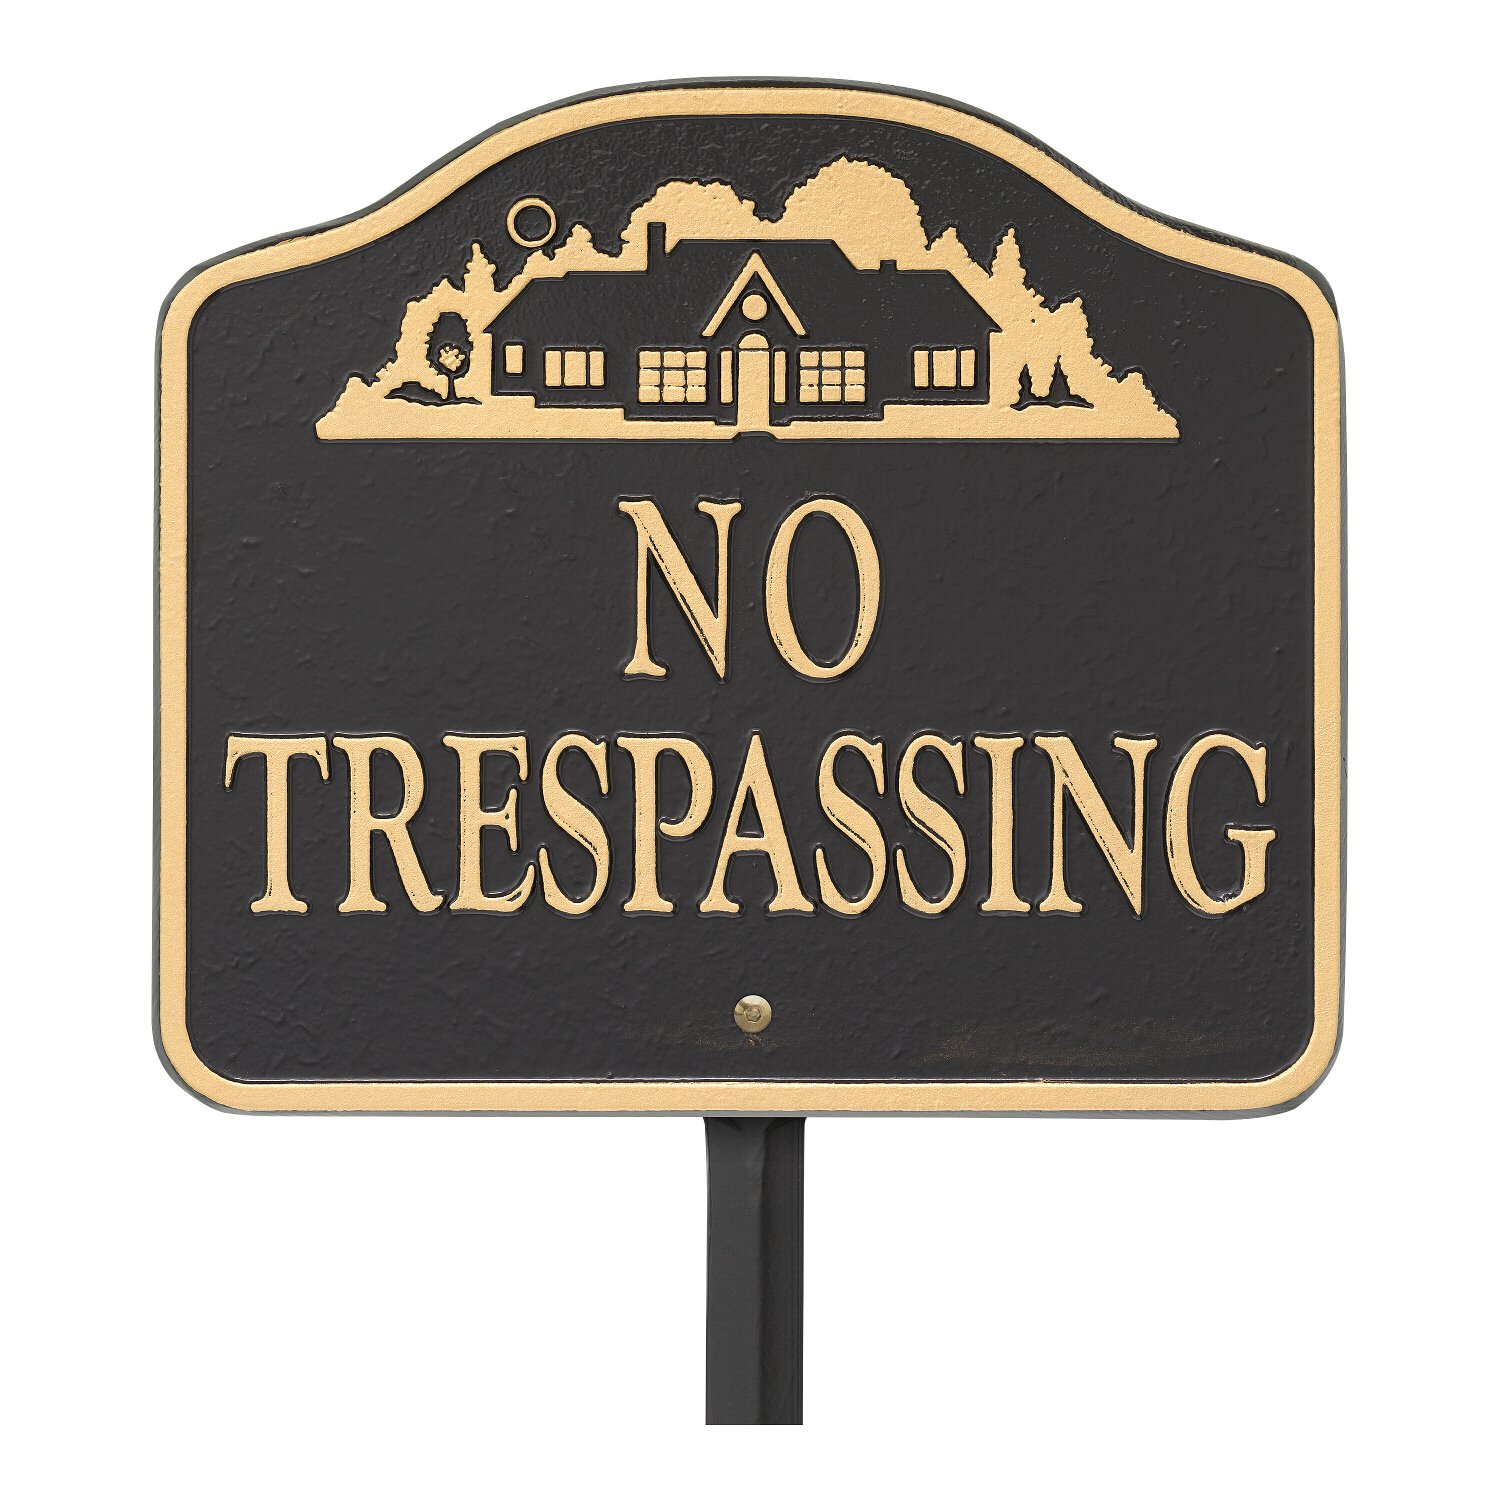 Whitehall No Trespassing, Cast Aluminum, Durable Wall Or Lawn Mounting Decorative Home Design Sign, Black/Gold